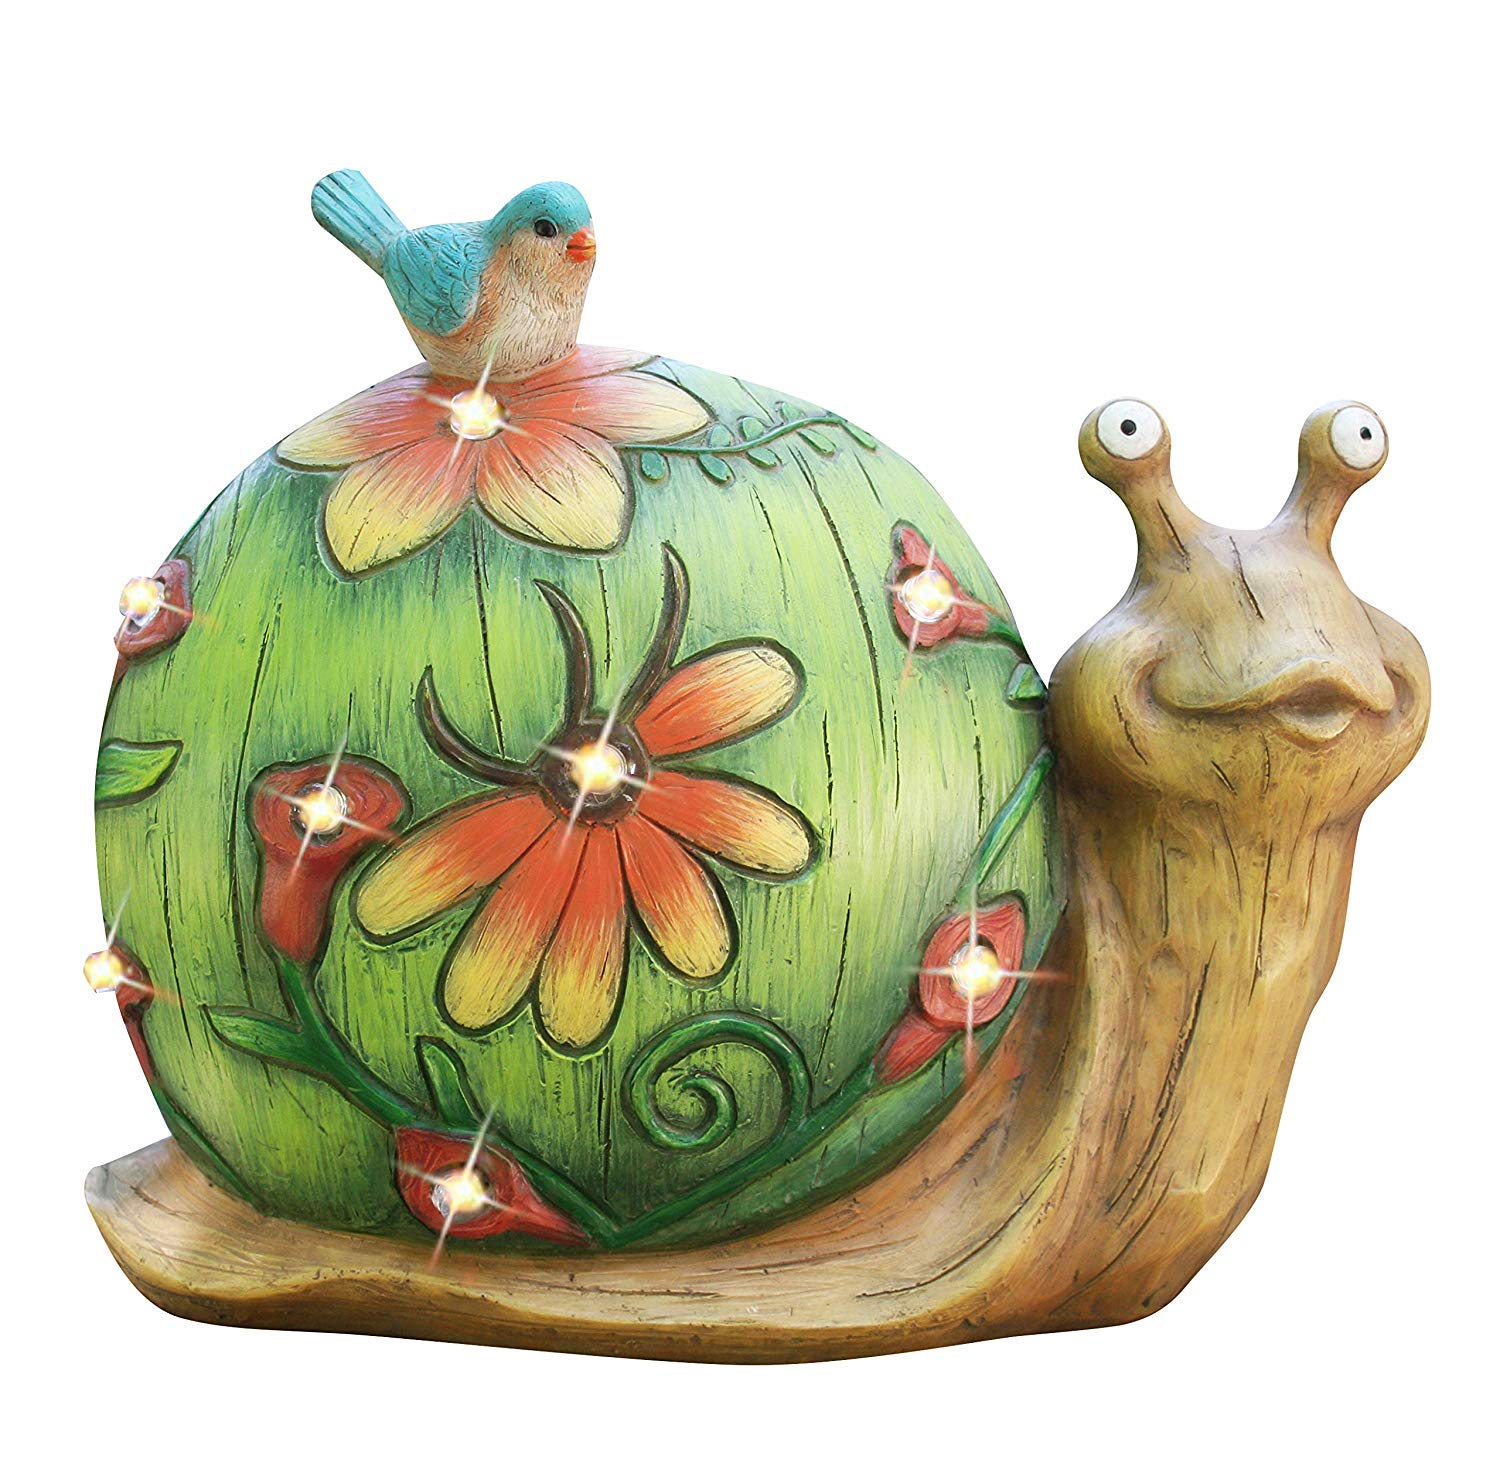 Garden Statue Snail Figurine - Solar Powered LED Lights for Indoor Outdoor Fall Decor for Halloween, Garden Lawn Yard Decorations, 10 x 8.5 Inch, HousewarmingGift by LA JOLIE MUSE